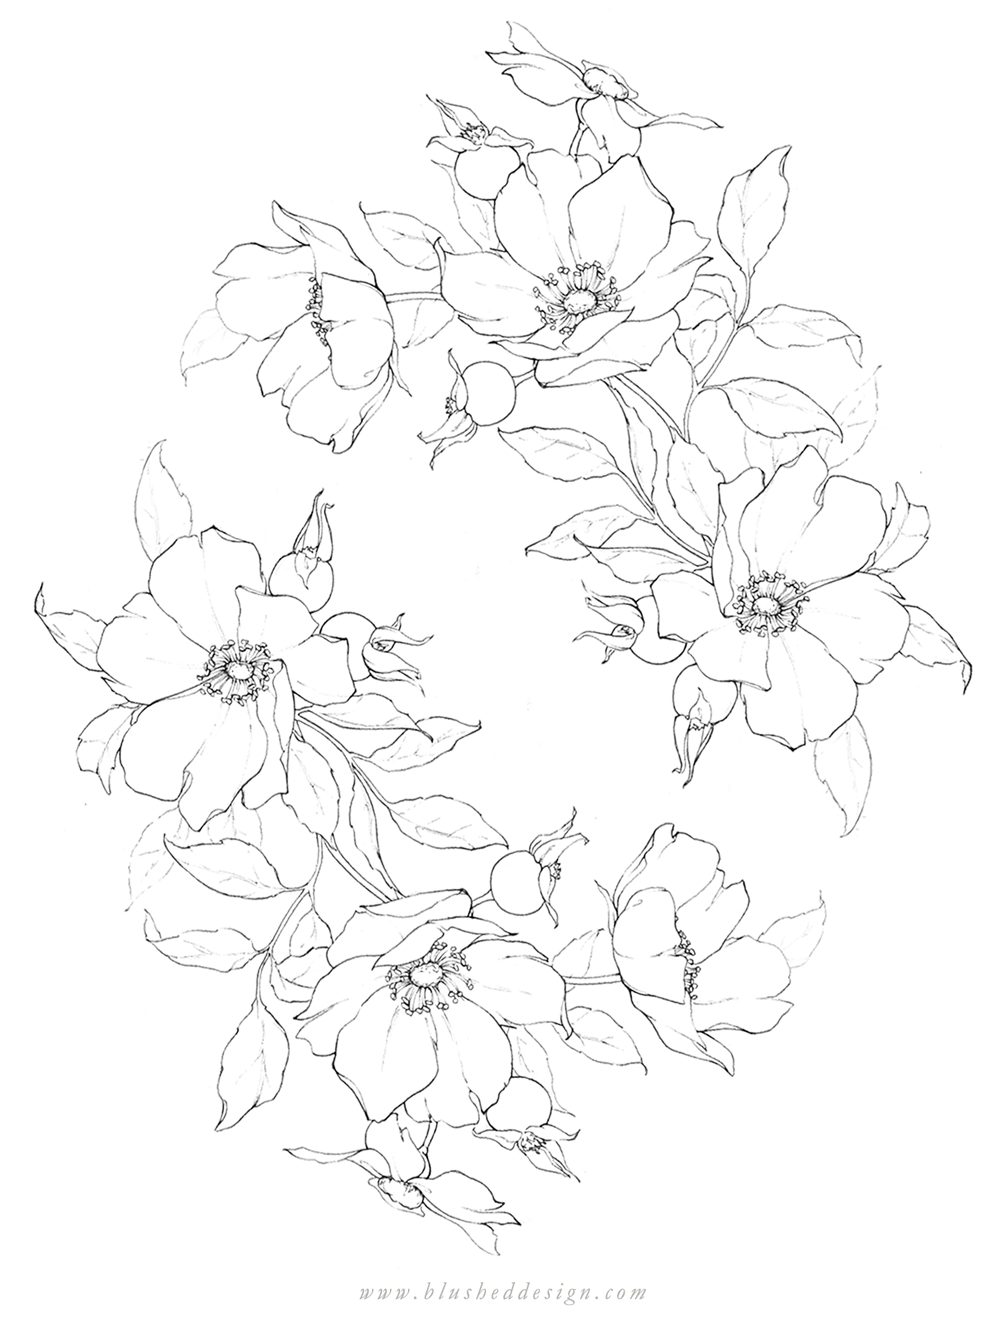 There's something so romantic and free about Wild Roses!  Wild rose botanical illustration featuring a whimsical wreath arrangement.  Beautiful pencil flower drawing by Katrina of Blushed Design. #floraldrawing #flowerdrawing #botanicalillustration #wildroses